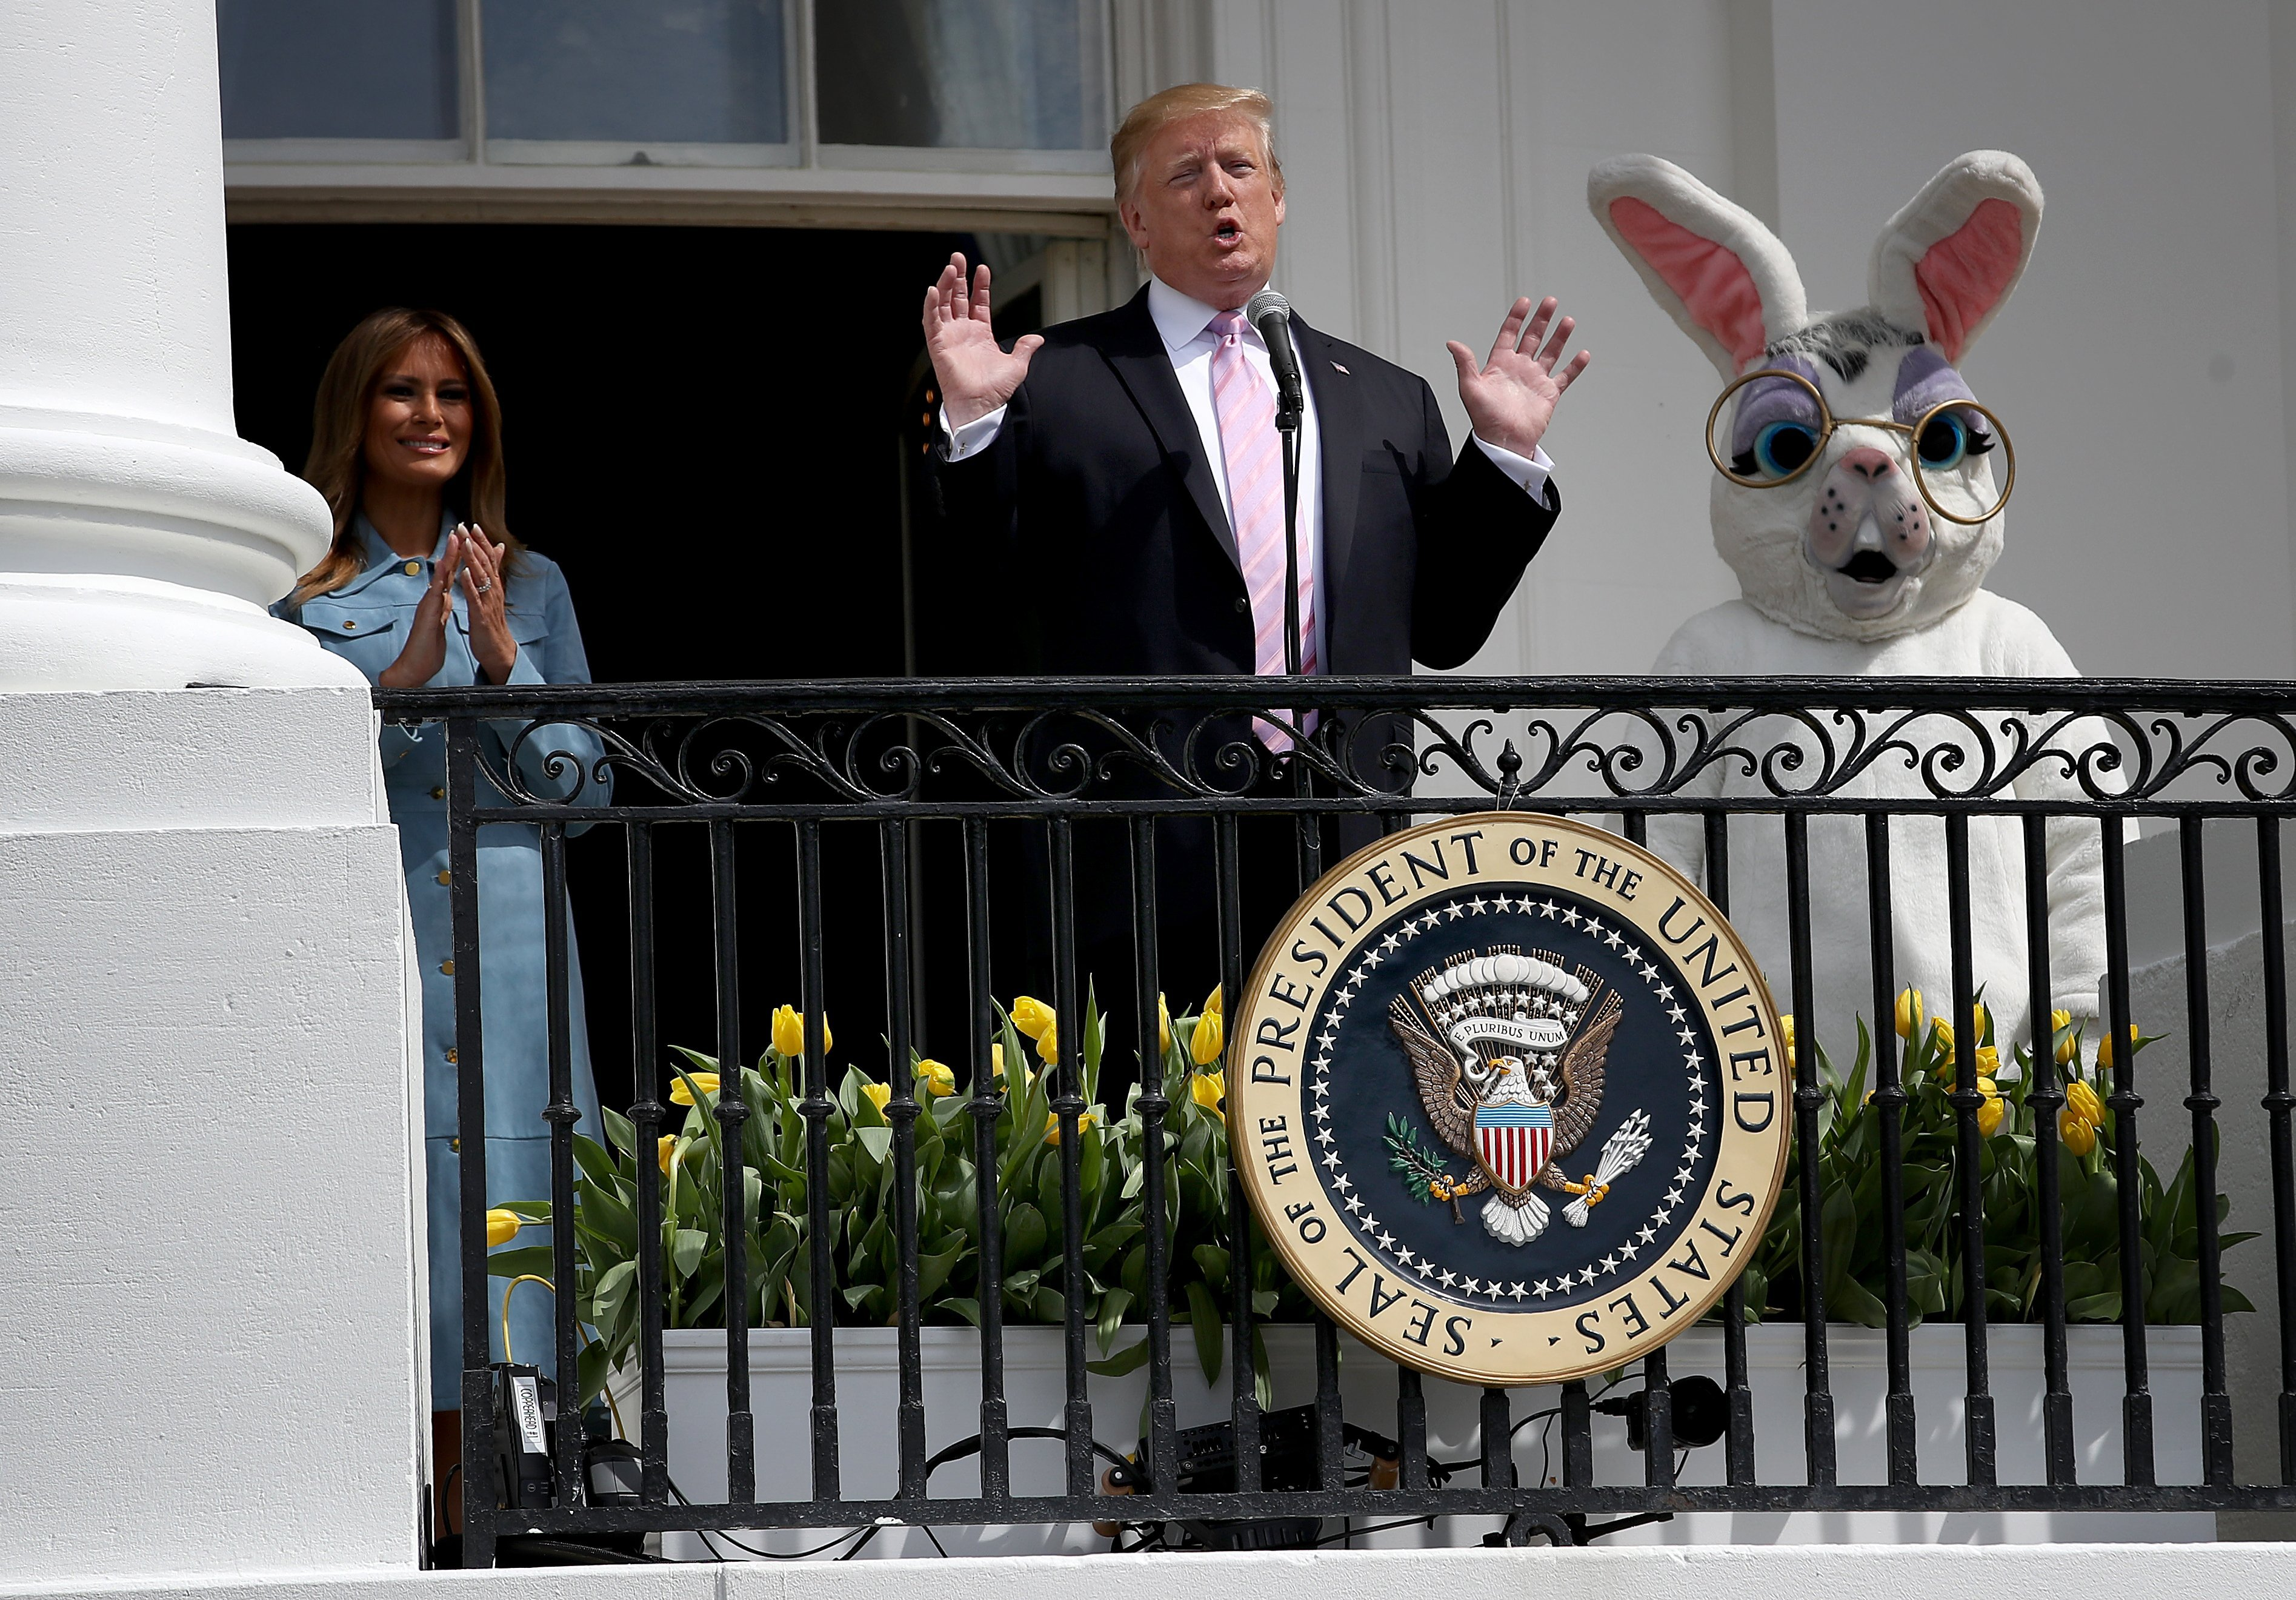 Donald Trump delivering the welcoming speech to the 141st Easter Egg Roll at the White House | Photo: Getty Images